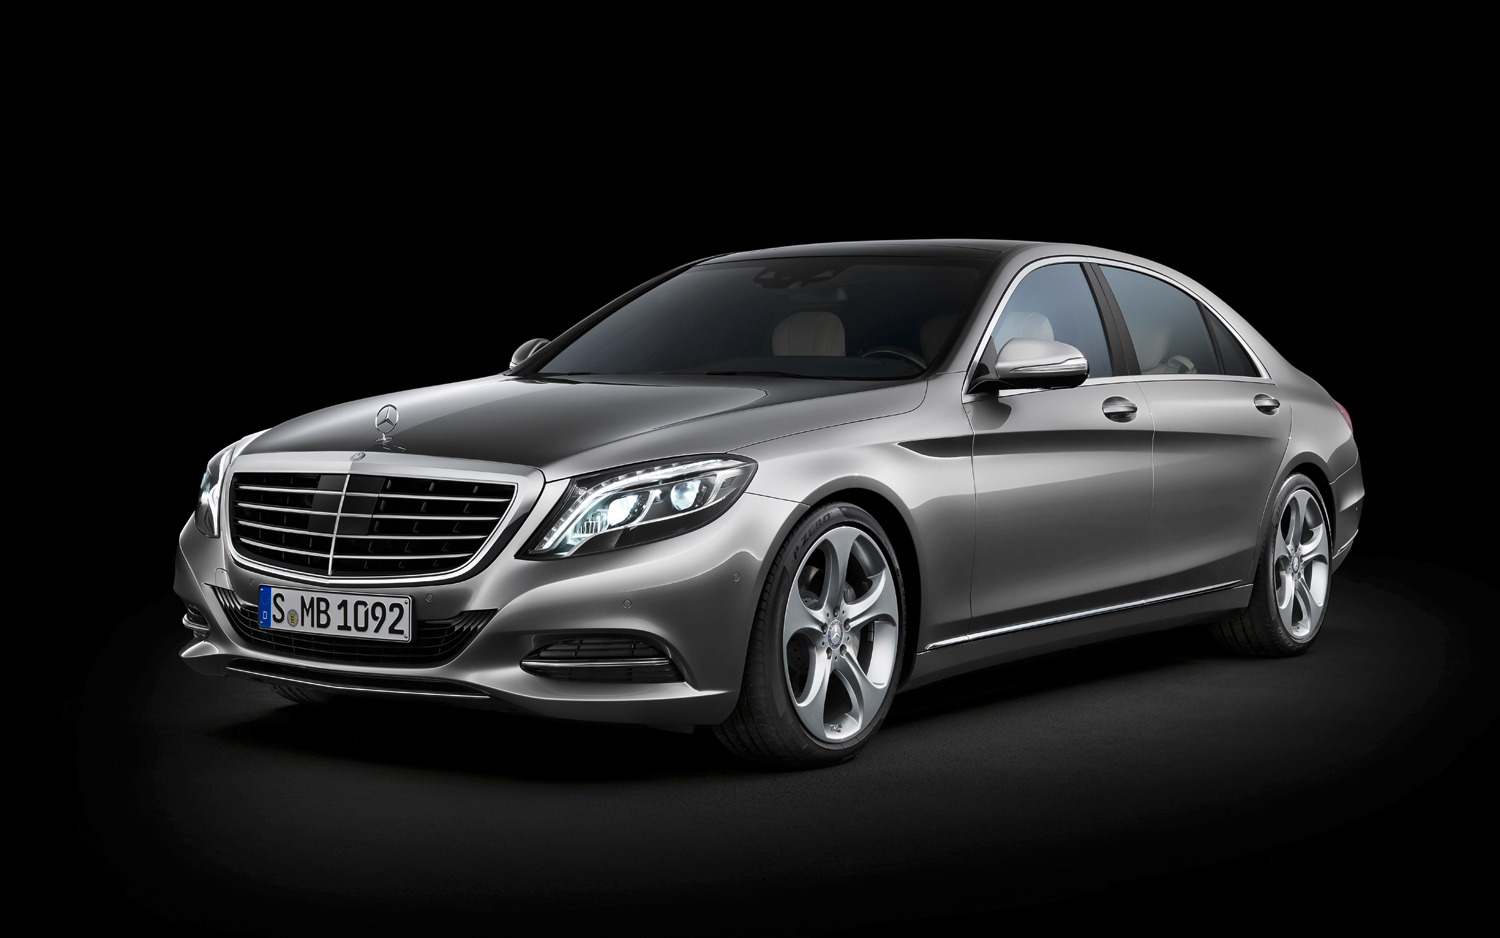 mercedes benz s class s400 hybrid launching in 2015 shifting gears. Black Bedroom Furniture Sets. Home Design Ideas